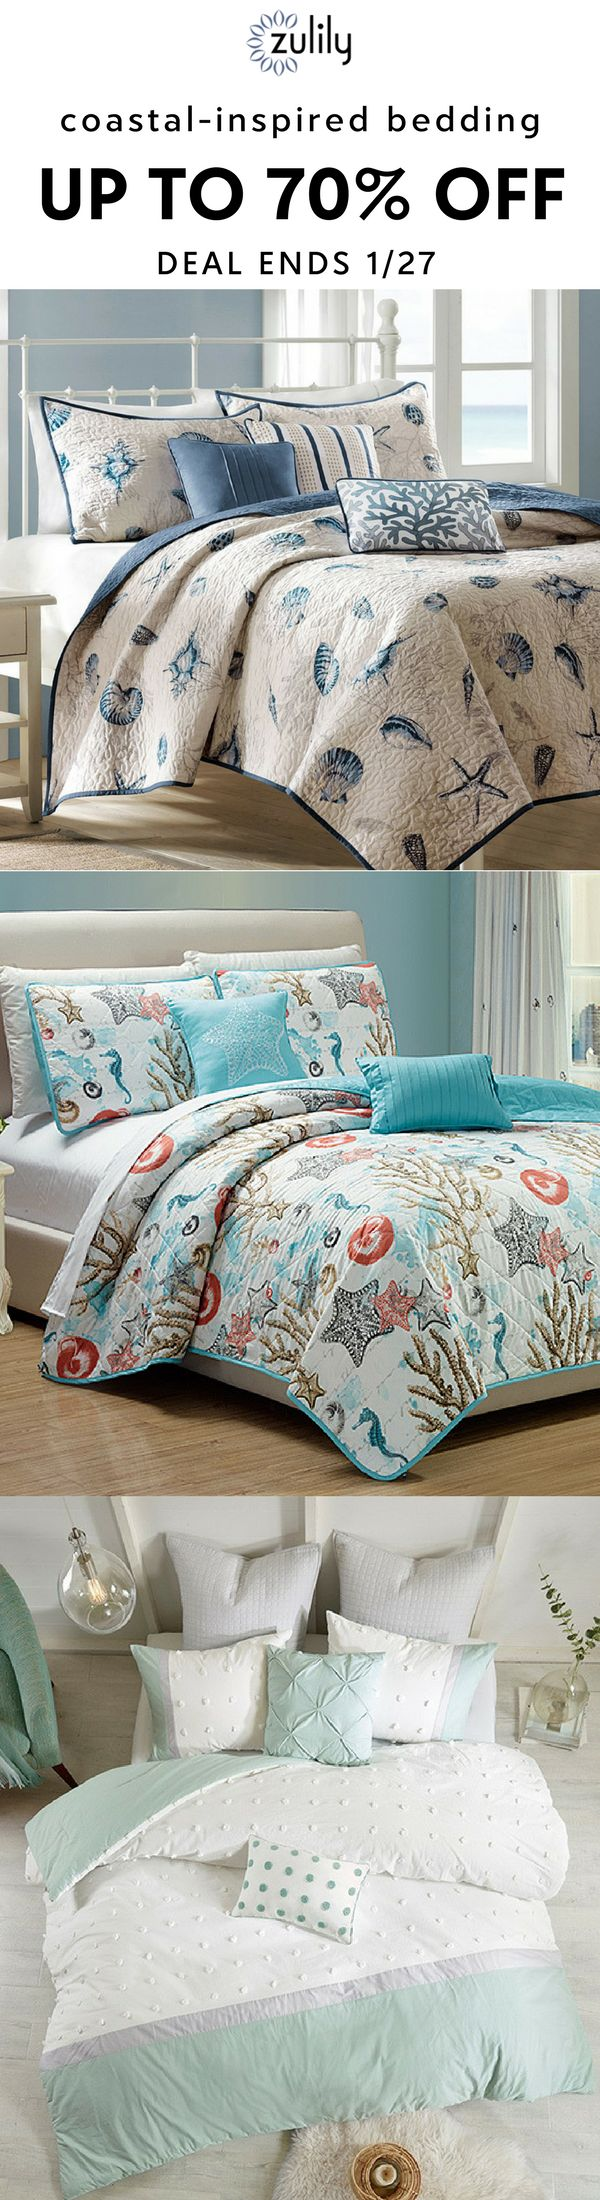 Sign up to shop coastal-inspired bedding, up to 70% off. Let the soft sound of rolling waves drift you to sleep. Or at least these cozy textiles. Coastal-inspired throw pillows and bedding sets anchor your bedroom's new vibe. Shop quilt and comforter sets featuring seaside designs to fit in with a wide variety of decorating schemes. Deal ends 1/27/18.